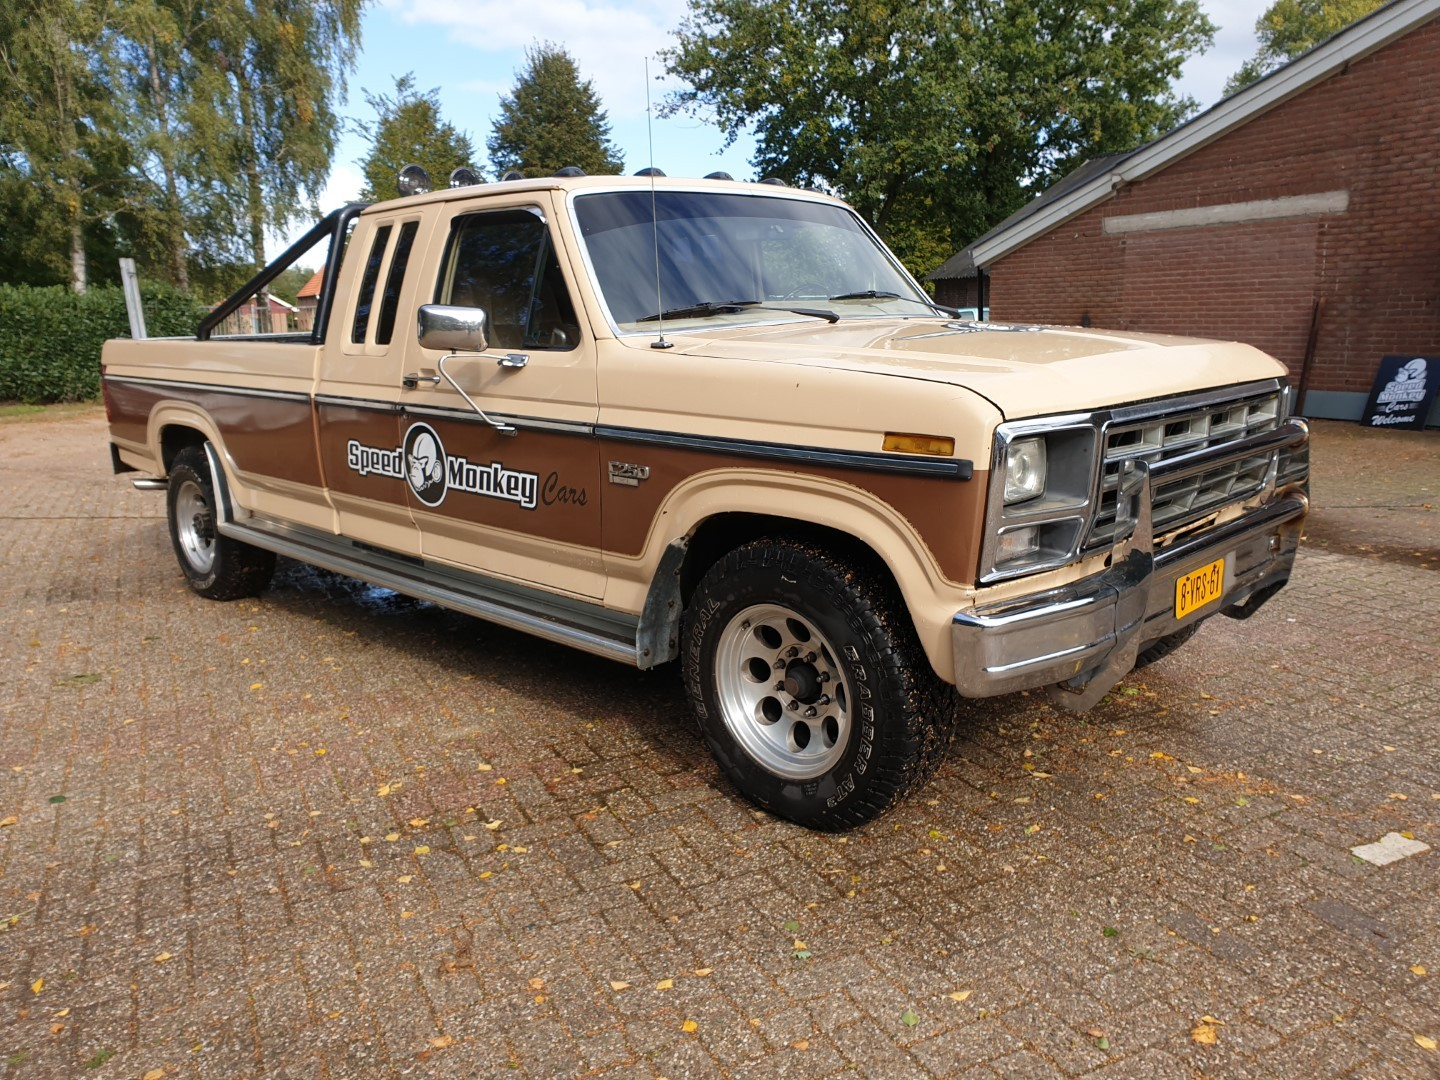 1985-Ford-F250-XL-460ci-Speedmonkeycars-8